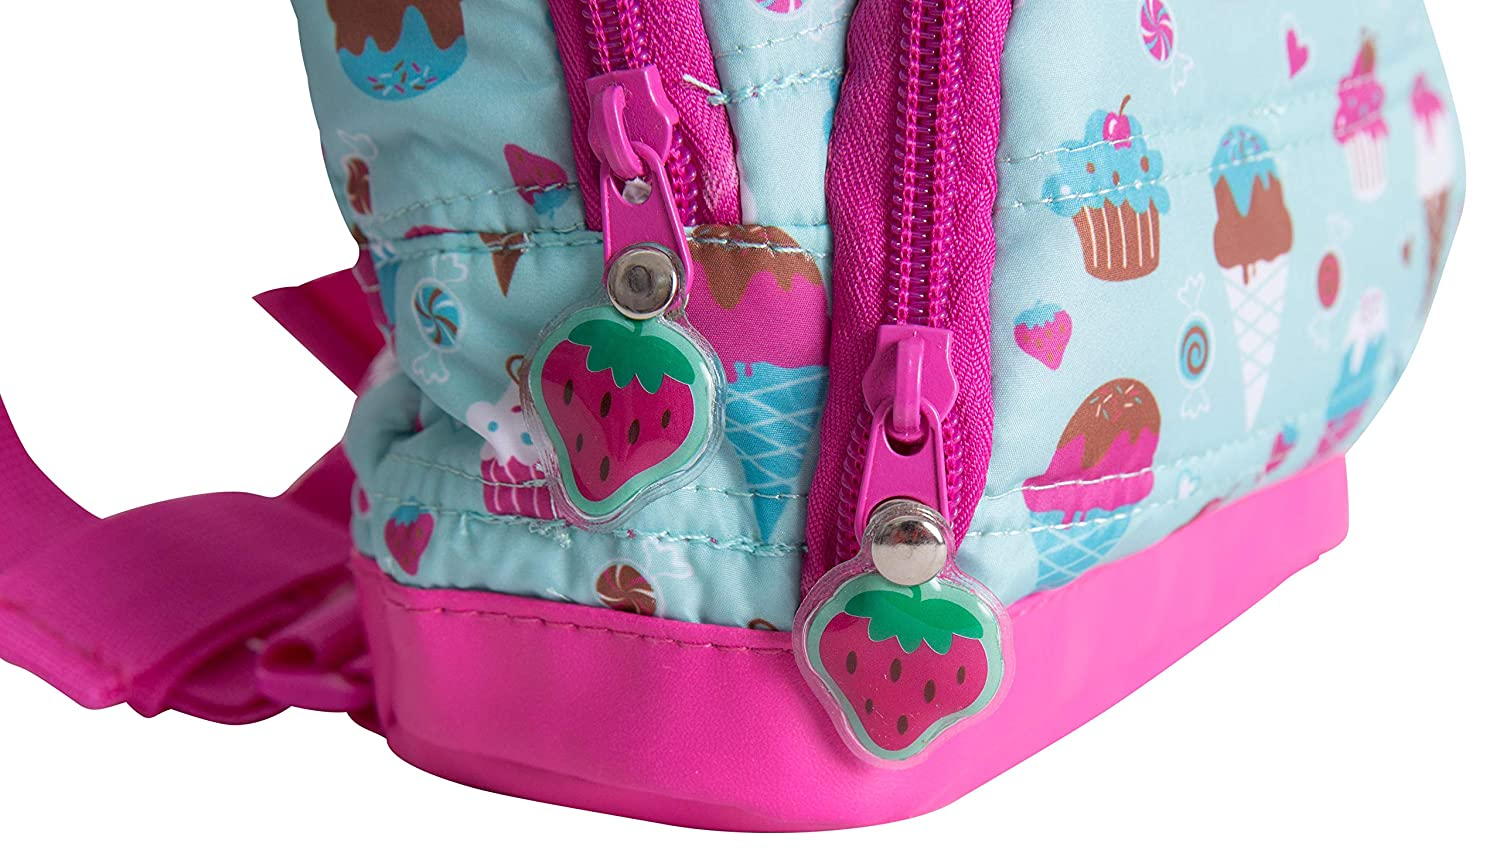 Nuby Quilted Wild Child Backpack with Safety Harness Leash Child Baby Toddler Travel